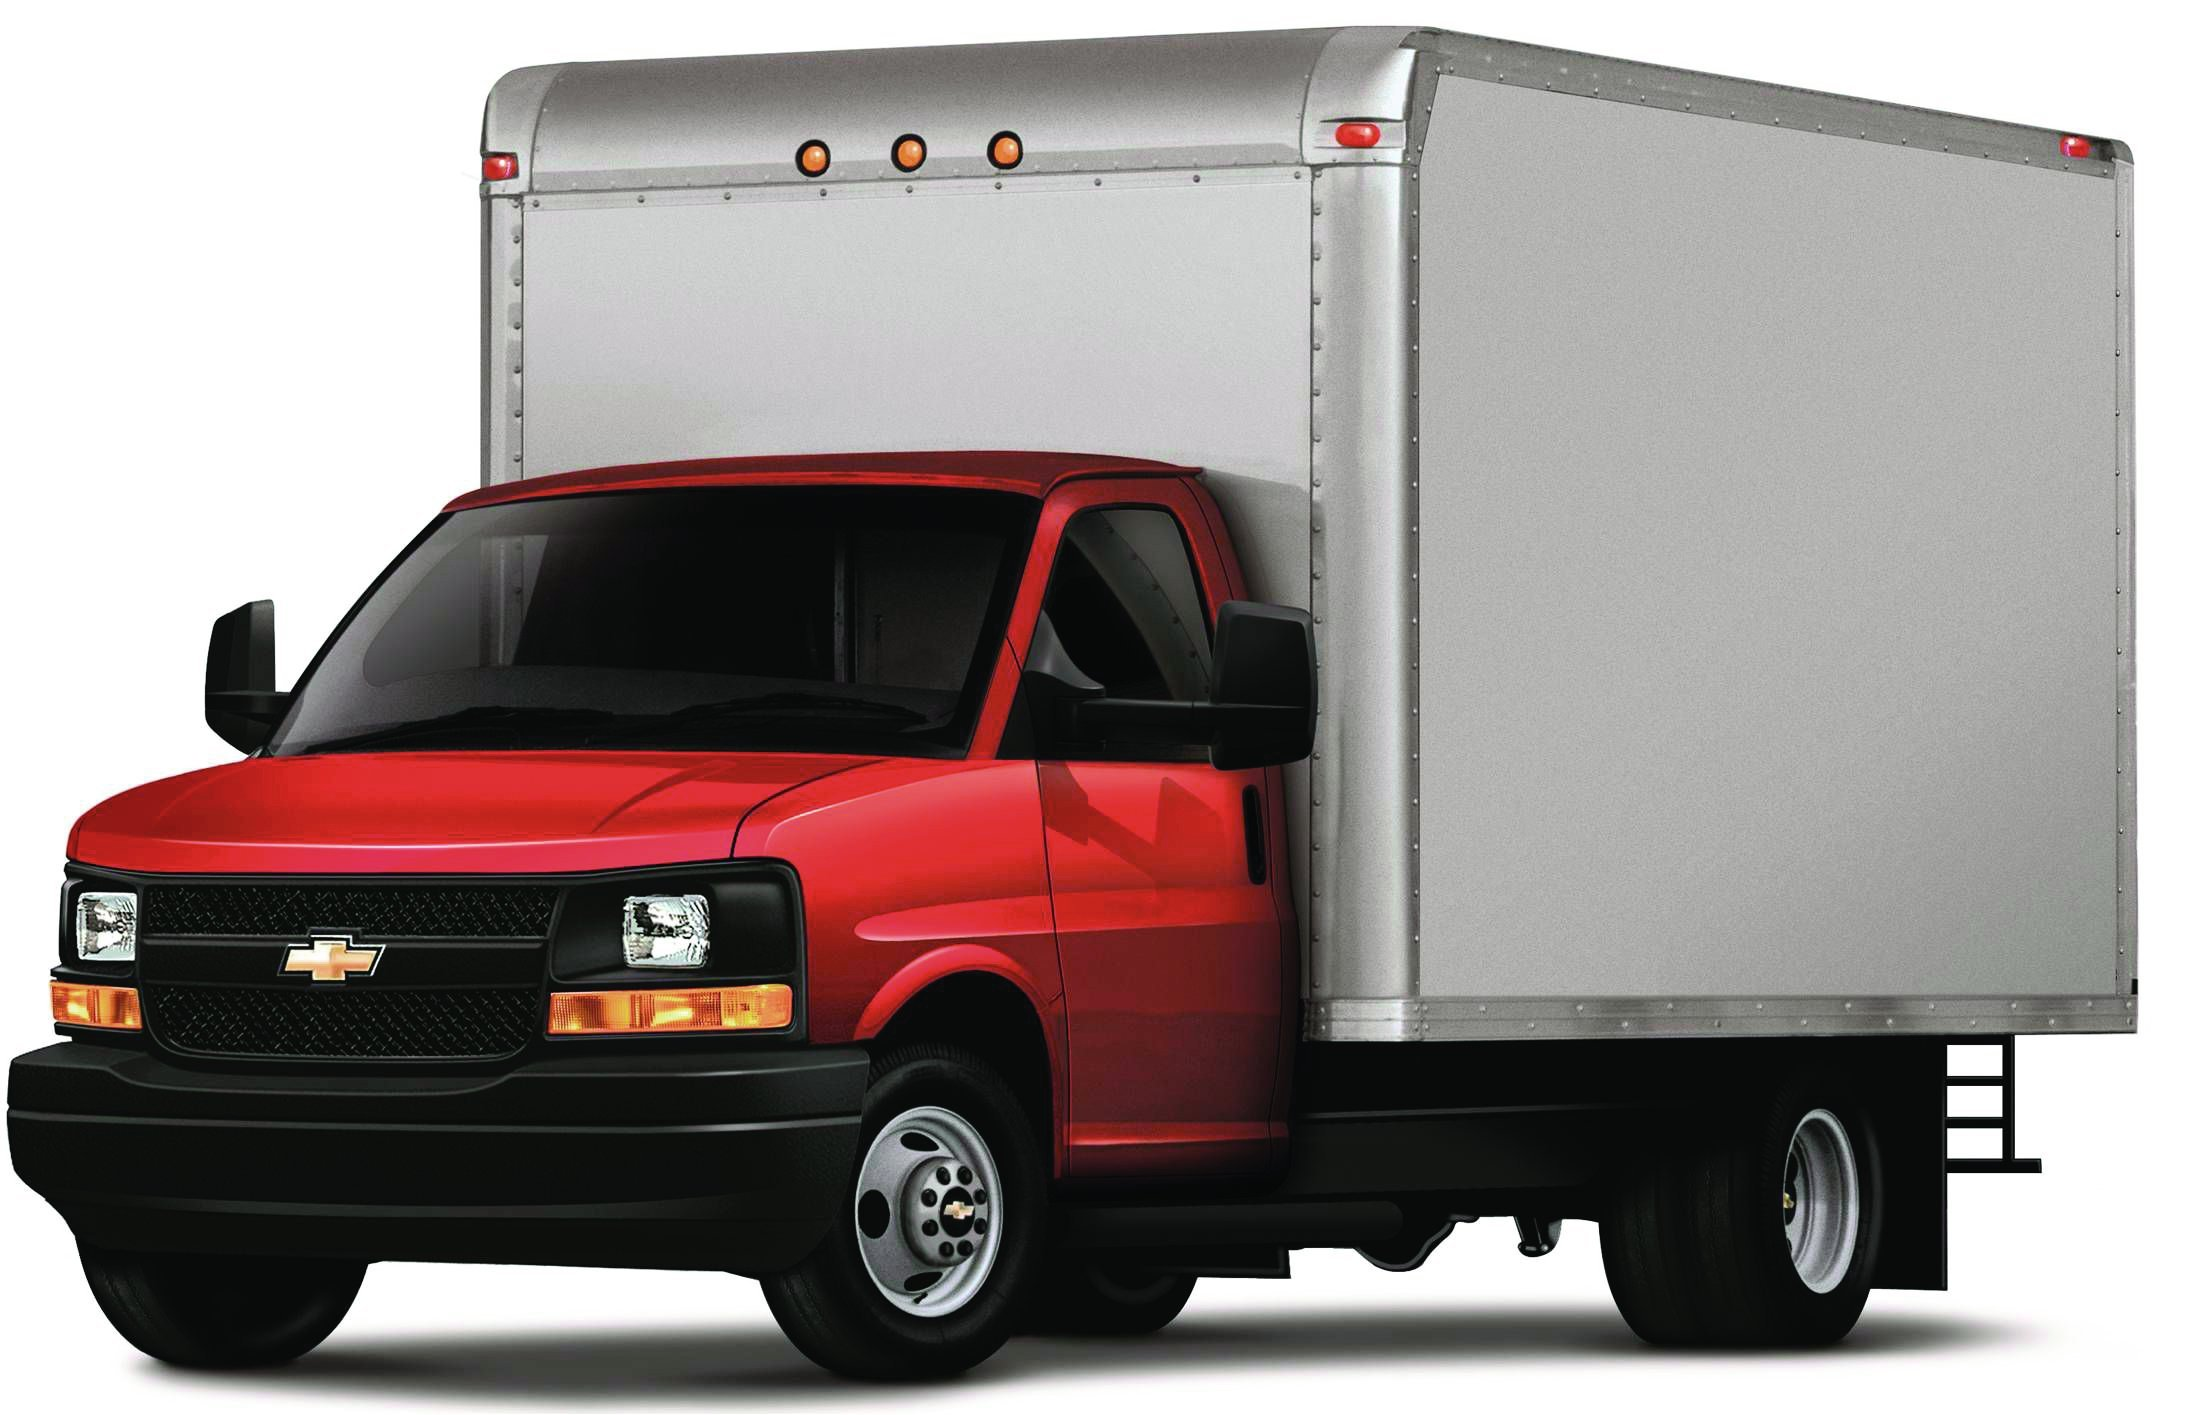 GM to Offer Single-Source LPG Option for Chevrolet & GMC Cutaway Vans